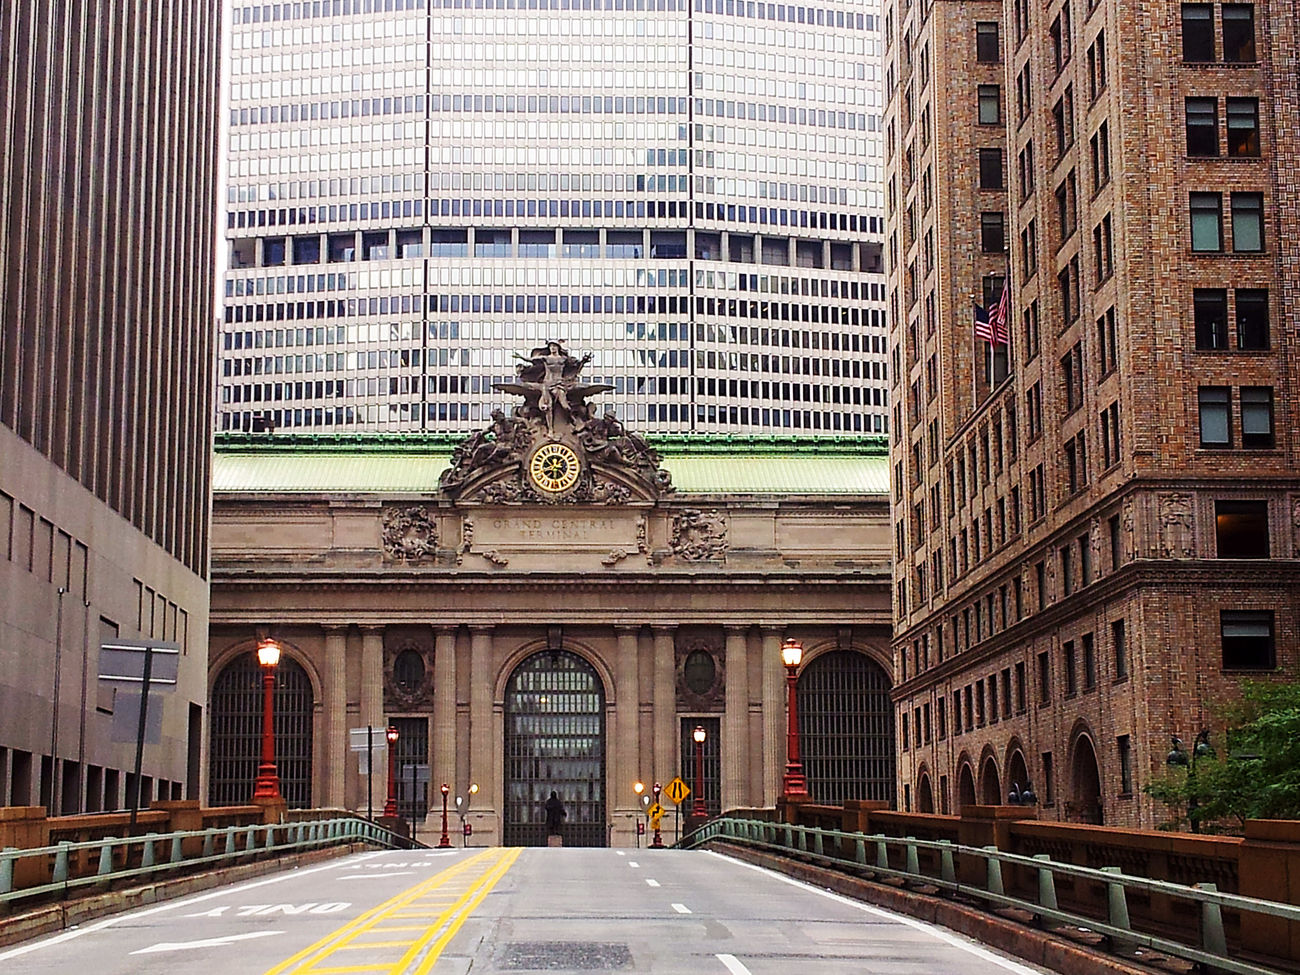 Exterior of Grandcentral Terminal old entrance on Parkavenue viaduct, New York City . This Landmark is the largest Train Station In the world with more than 44 platforms and 67 tracks. NYC Architecture Big Apple Manhattan USA Travel Historical Midtown Facades Transportation Avengers America Railway Famous Vacation Holidays Bridge Viaduct